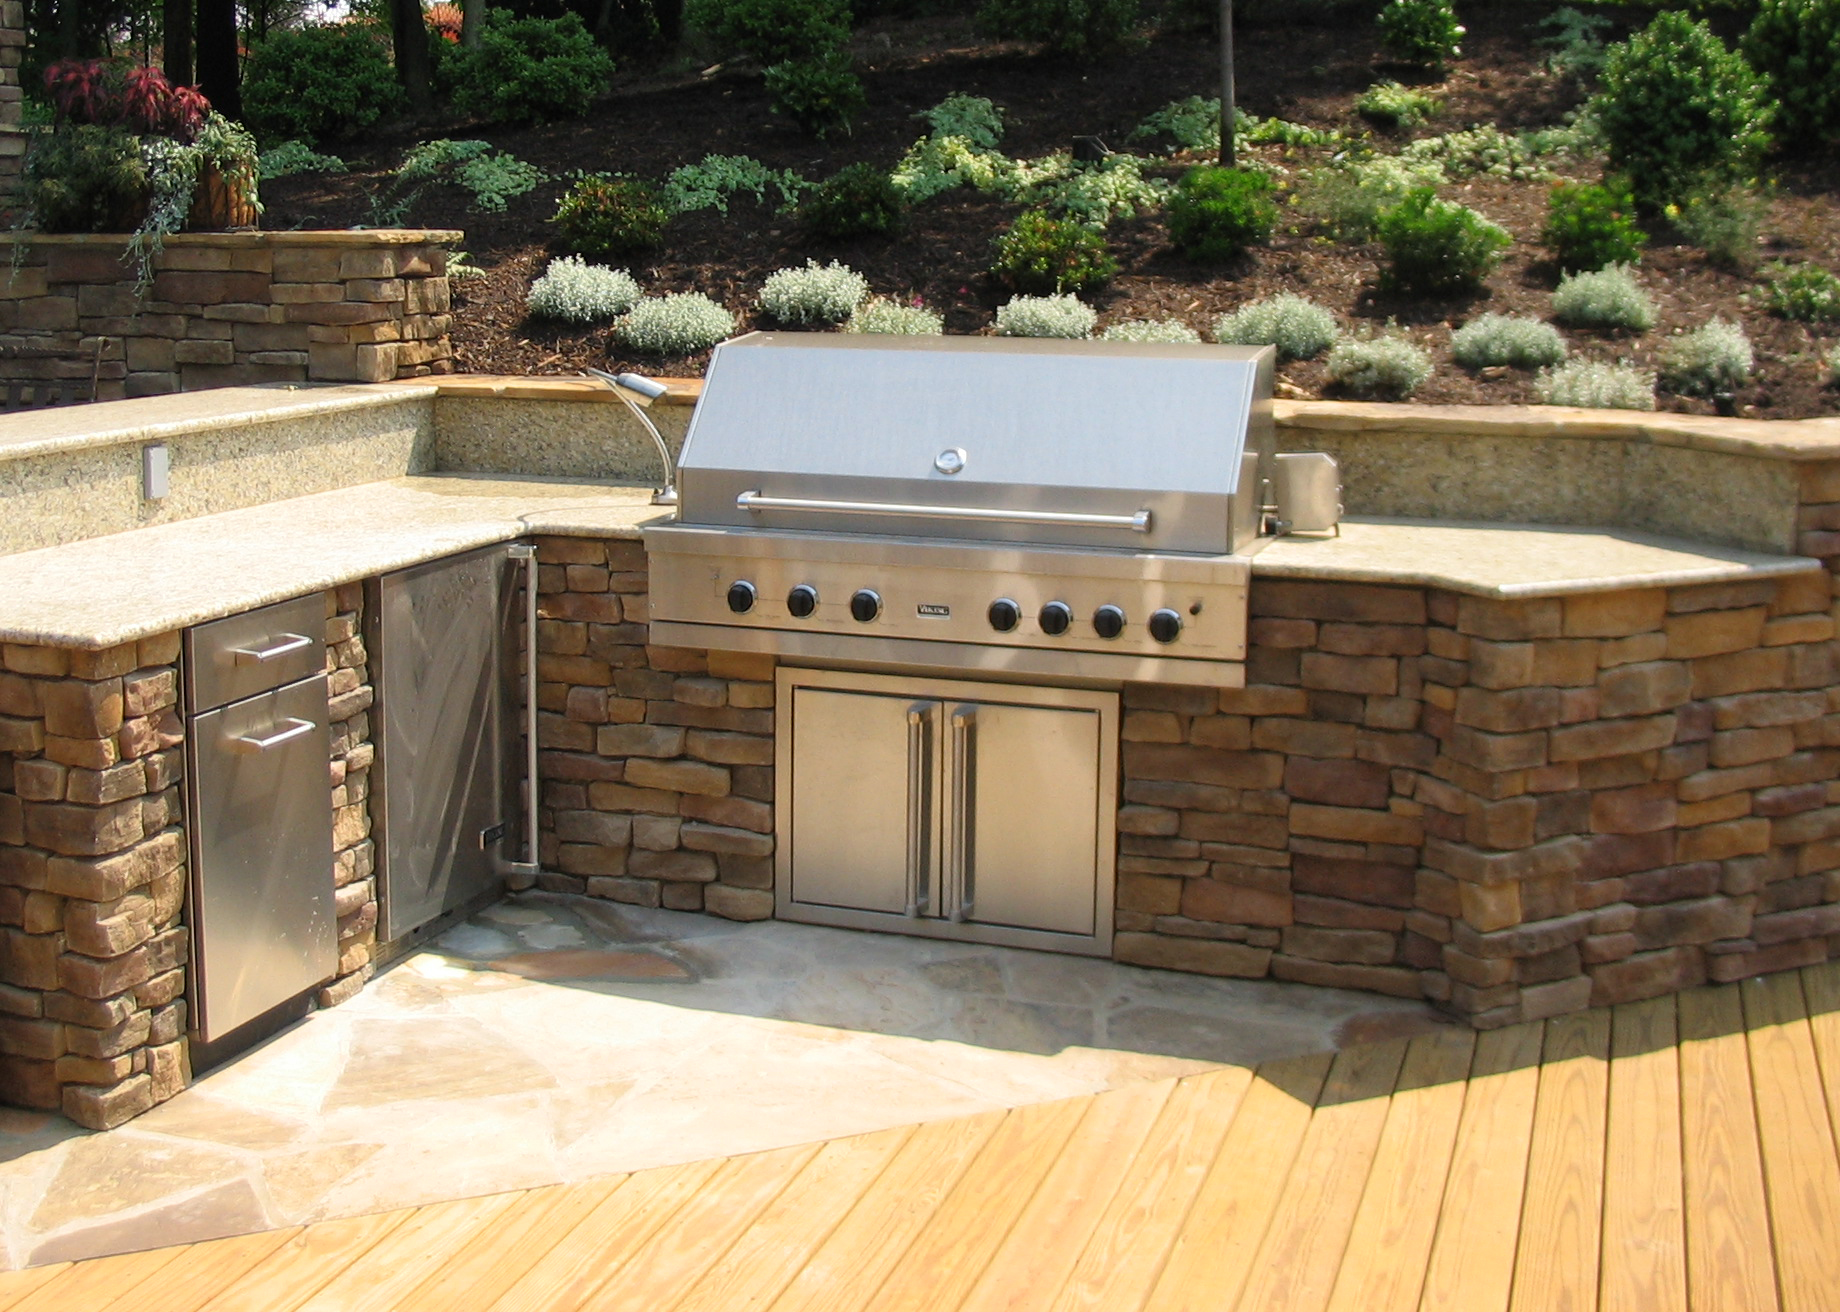 Designing an outdoor kitchen revolutionary gardens for Bbq grill designs and plans